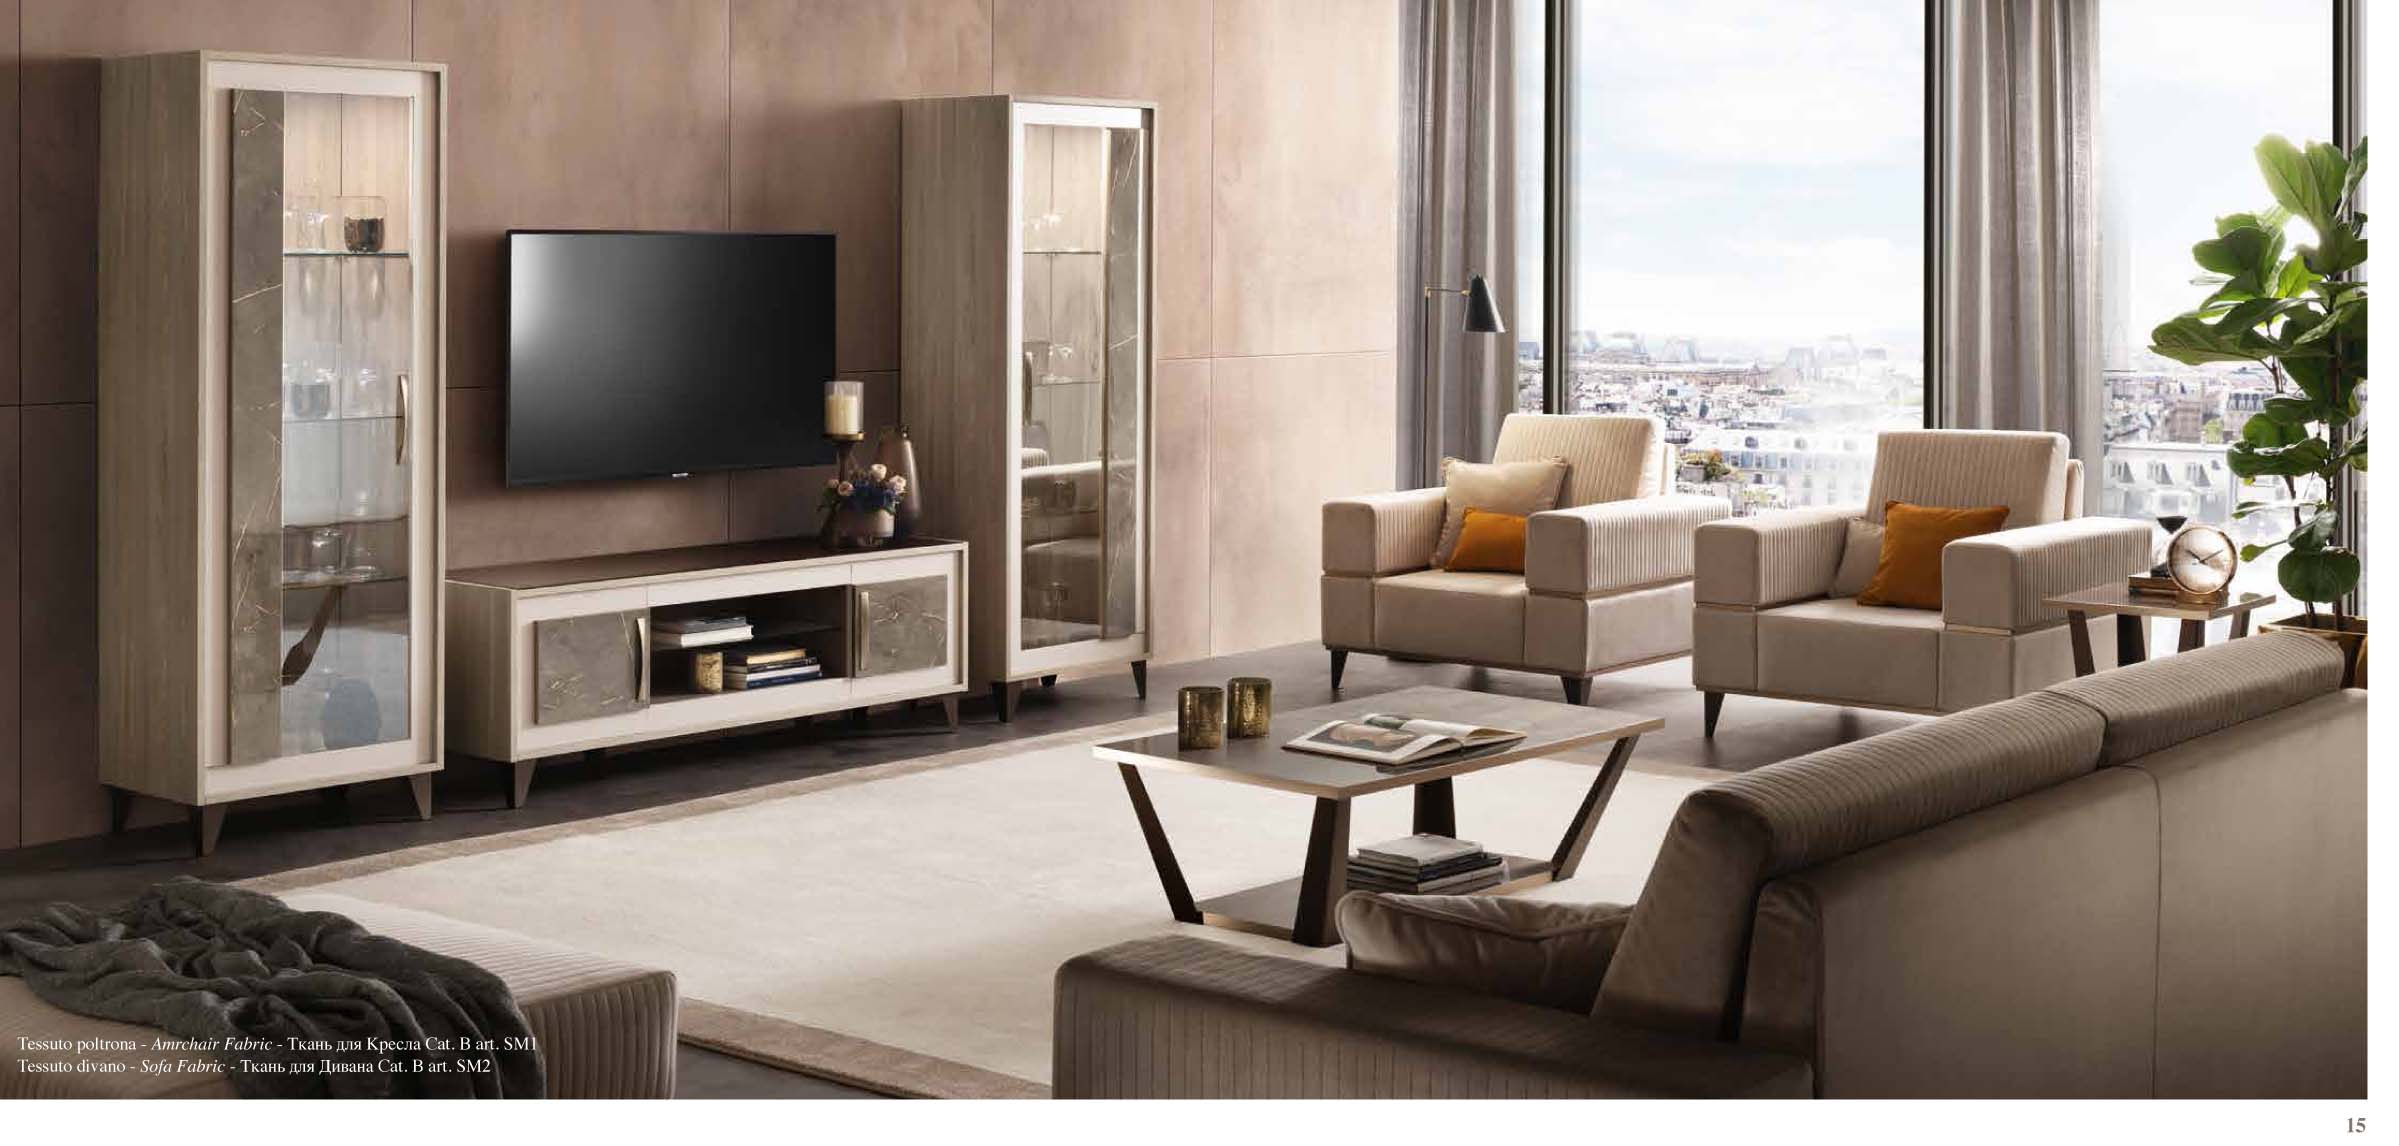 Brands Arredoclassic Living Room, Italy ArredoAmbra Entertainment Center by Arredoclassic, Italy